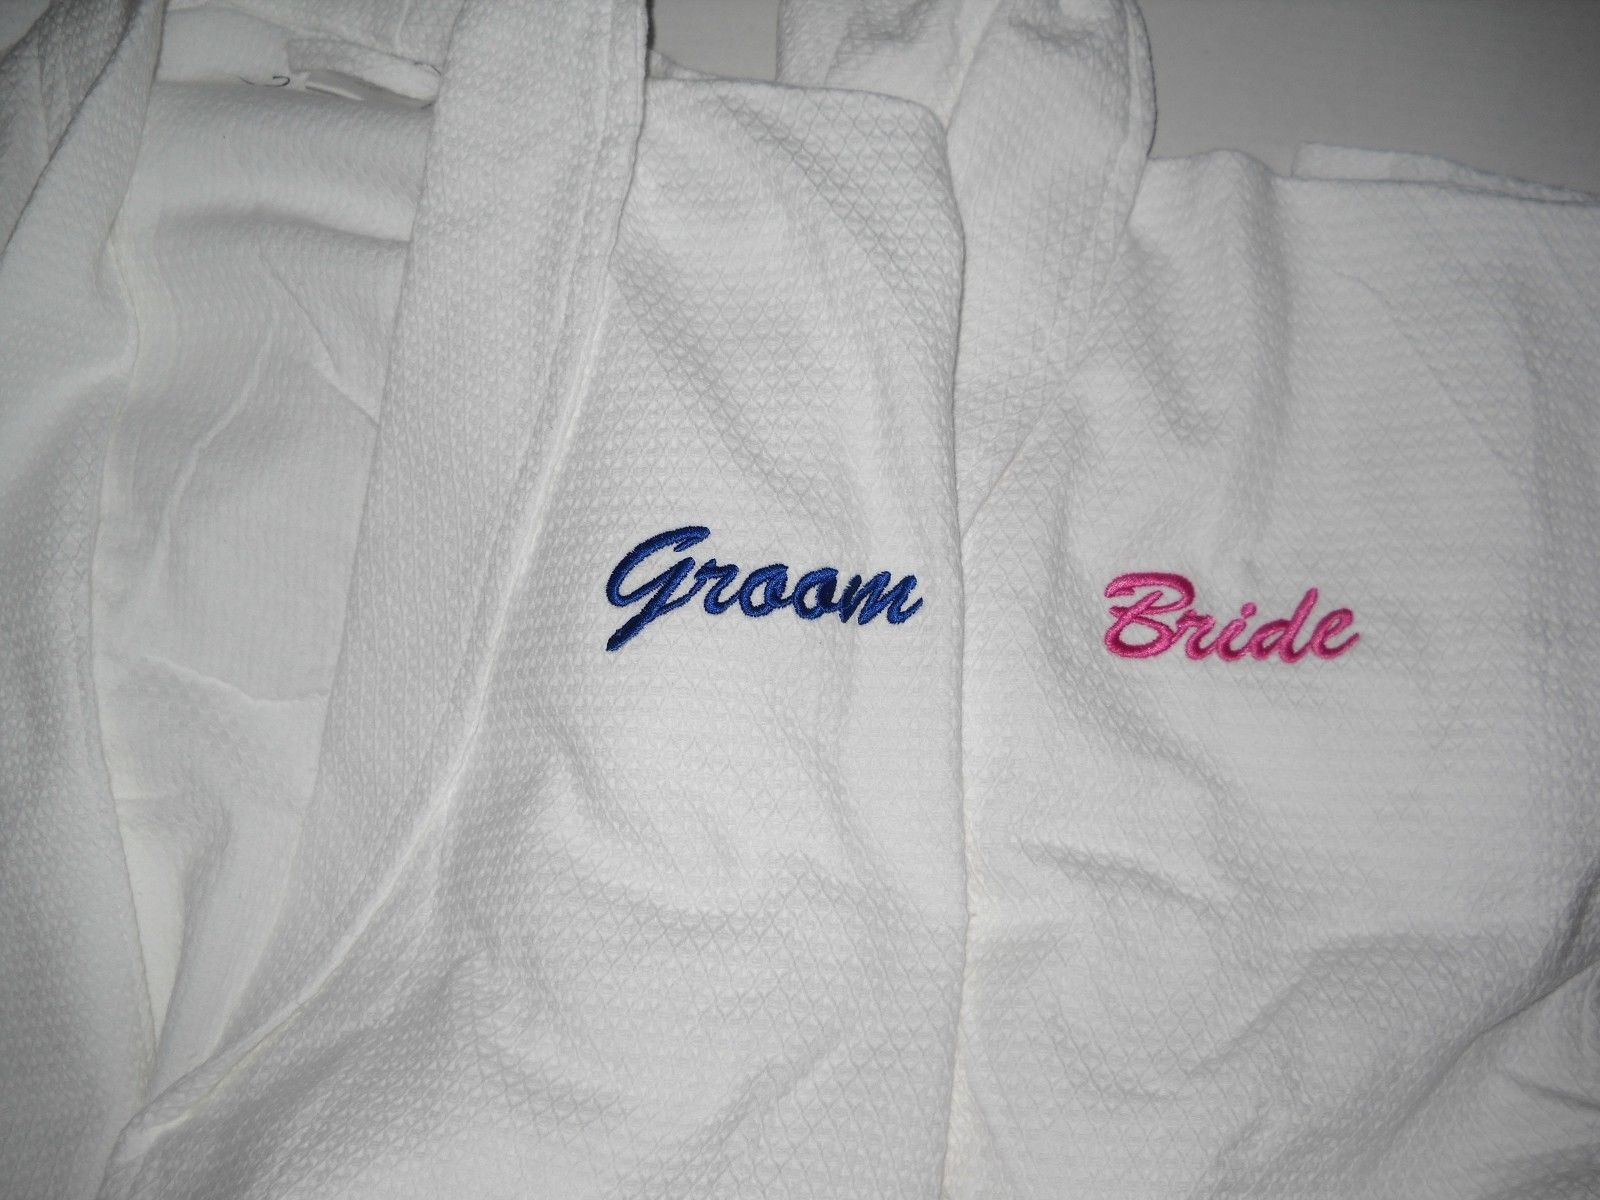 Bulgarian Bride And Groom Sleepwear 51